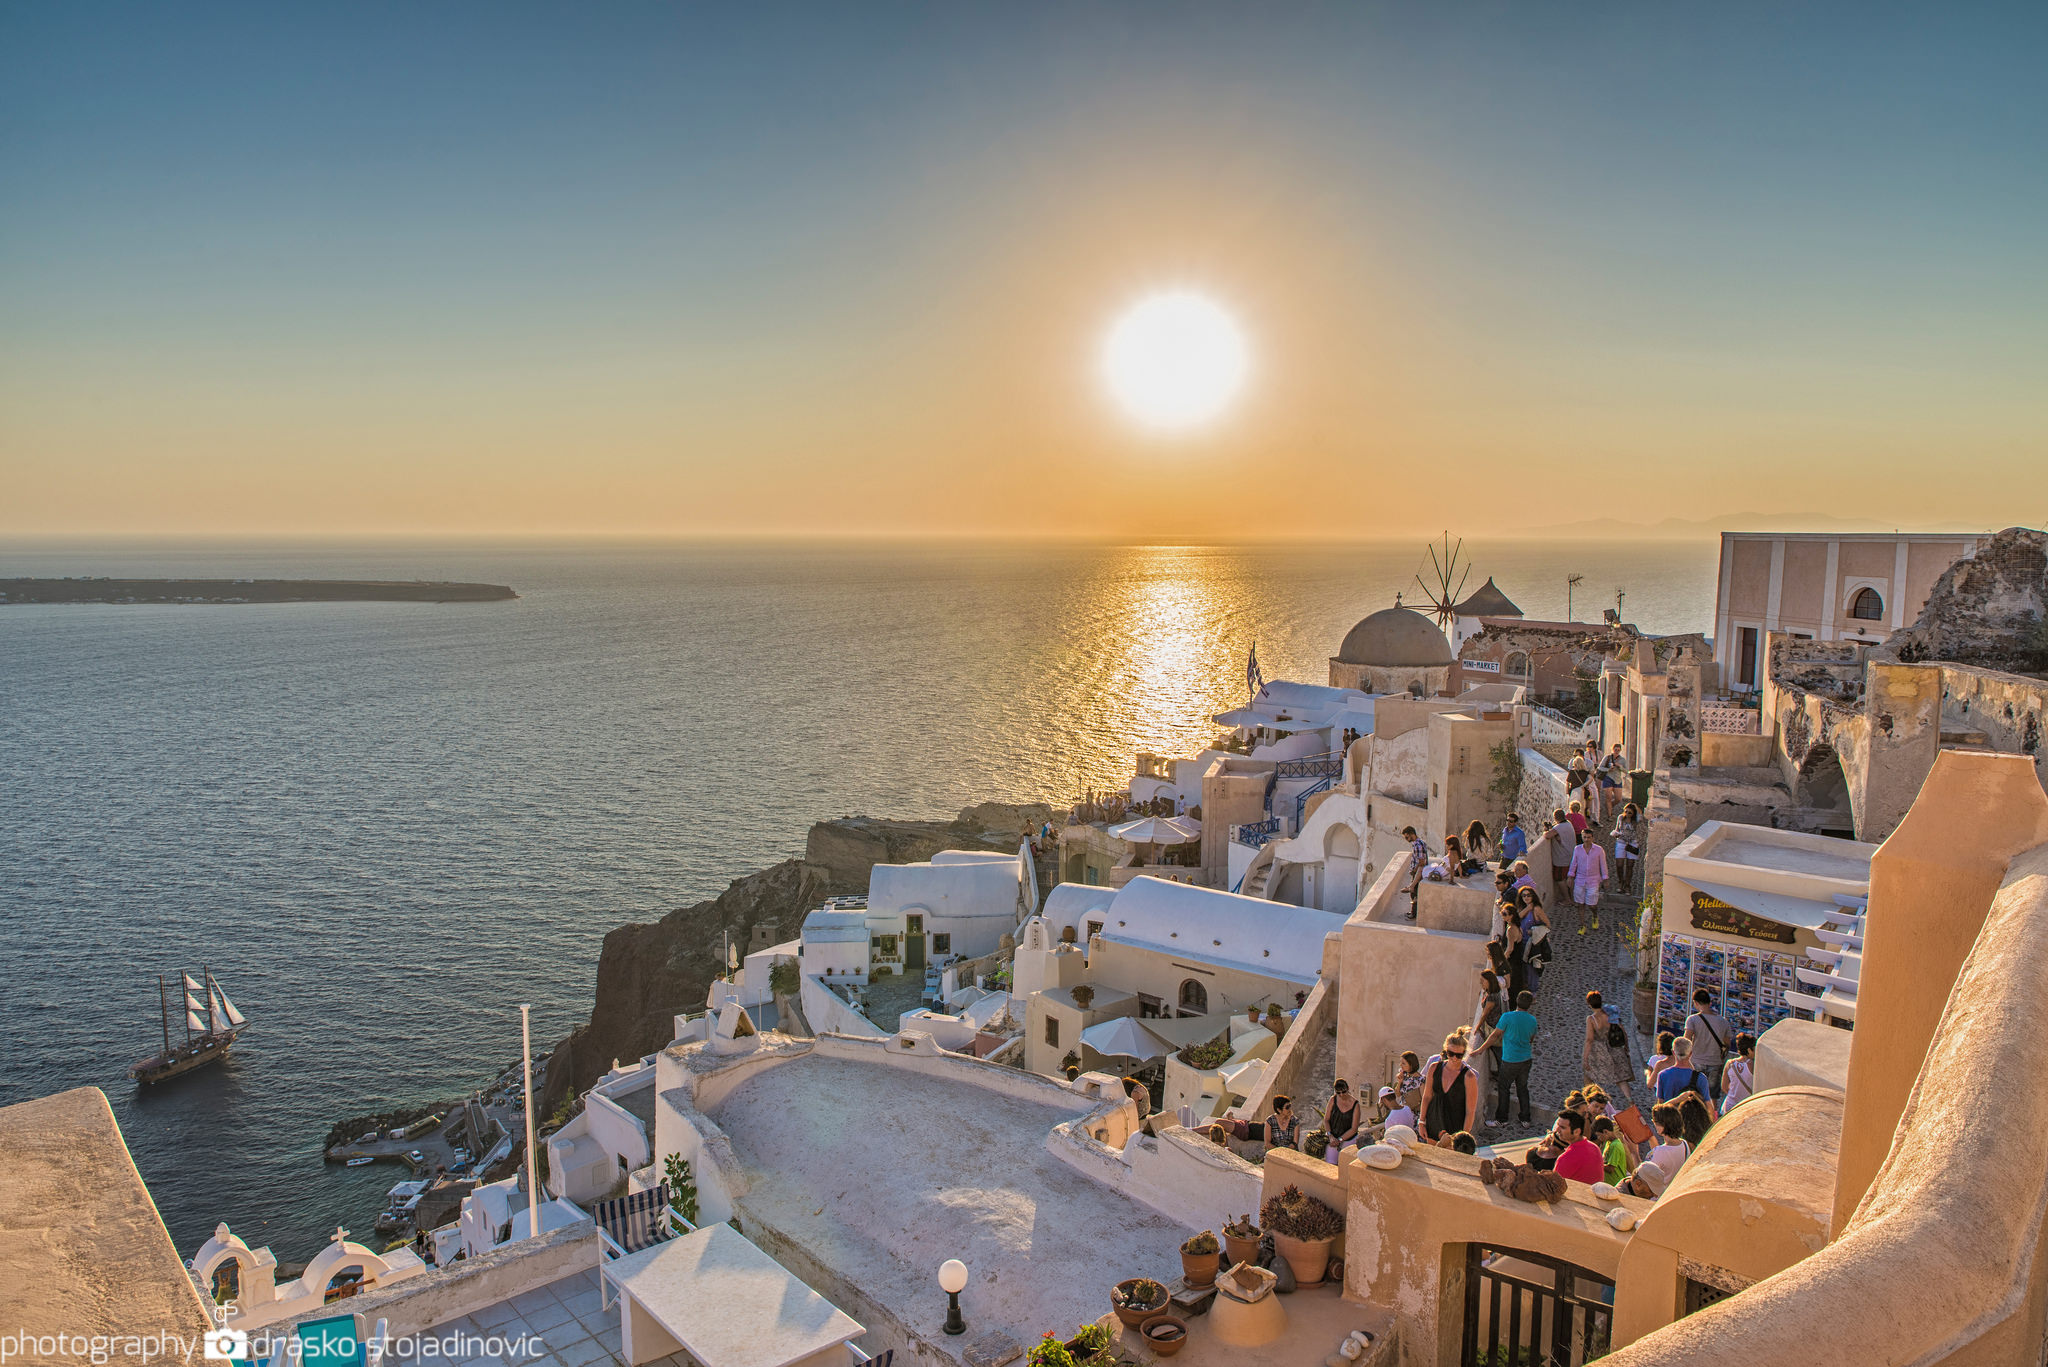 Santorini – One of the most beautiful places on earth!